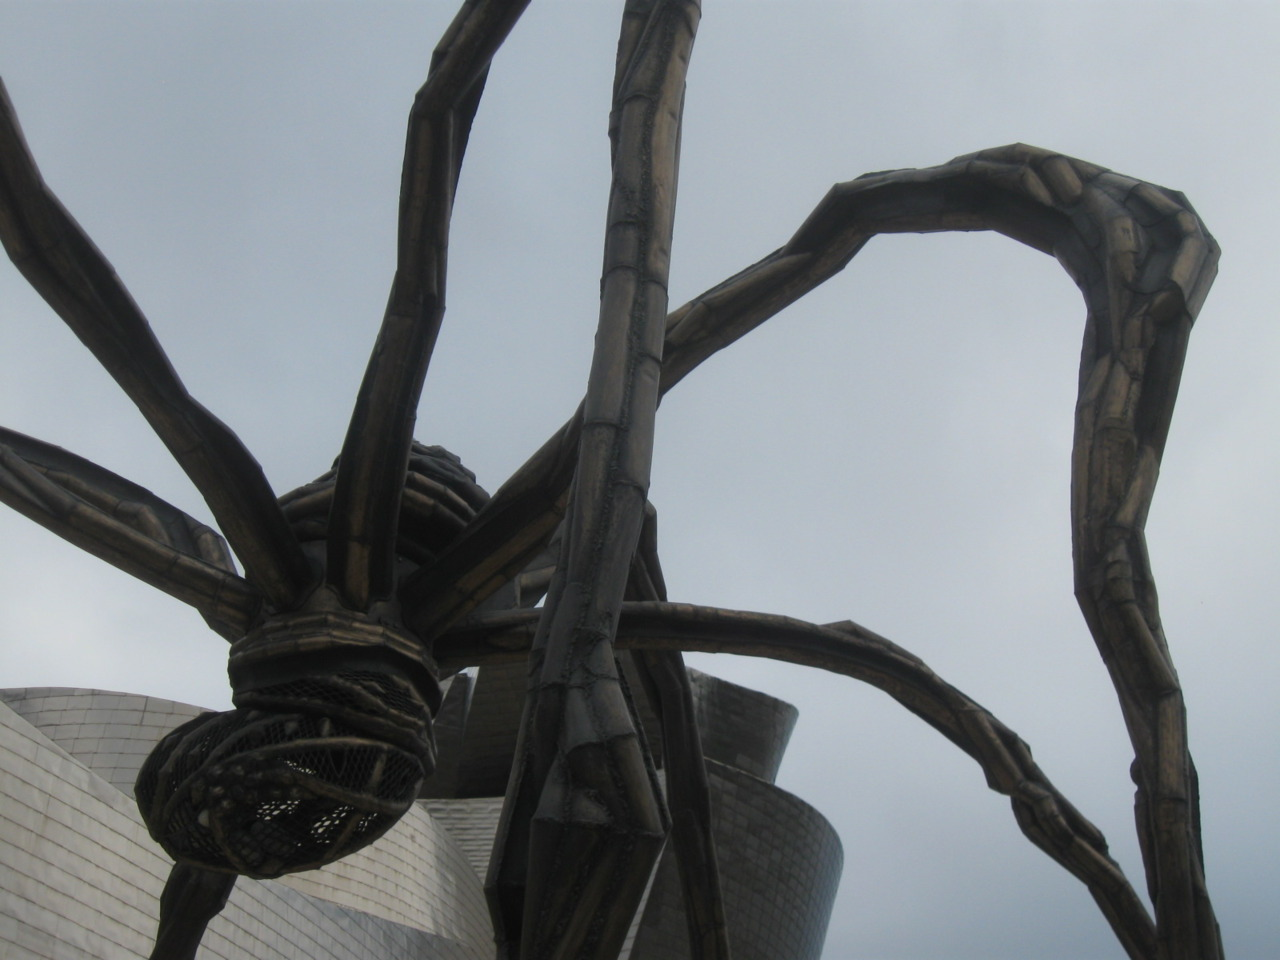 July 2009. Maman by Louise Bourgeois sitting outside of the Guggenheim Museum in Bilbao. Bilbao, Biscay, Spain.